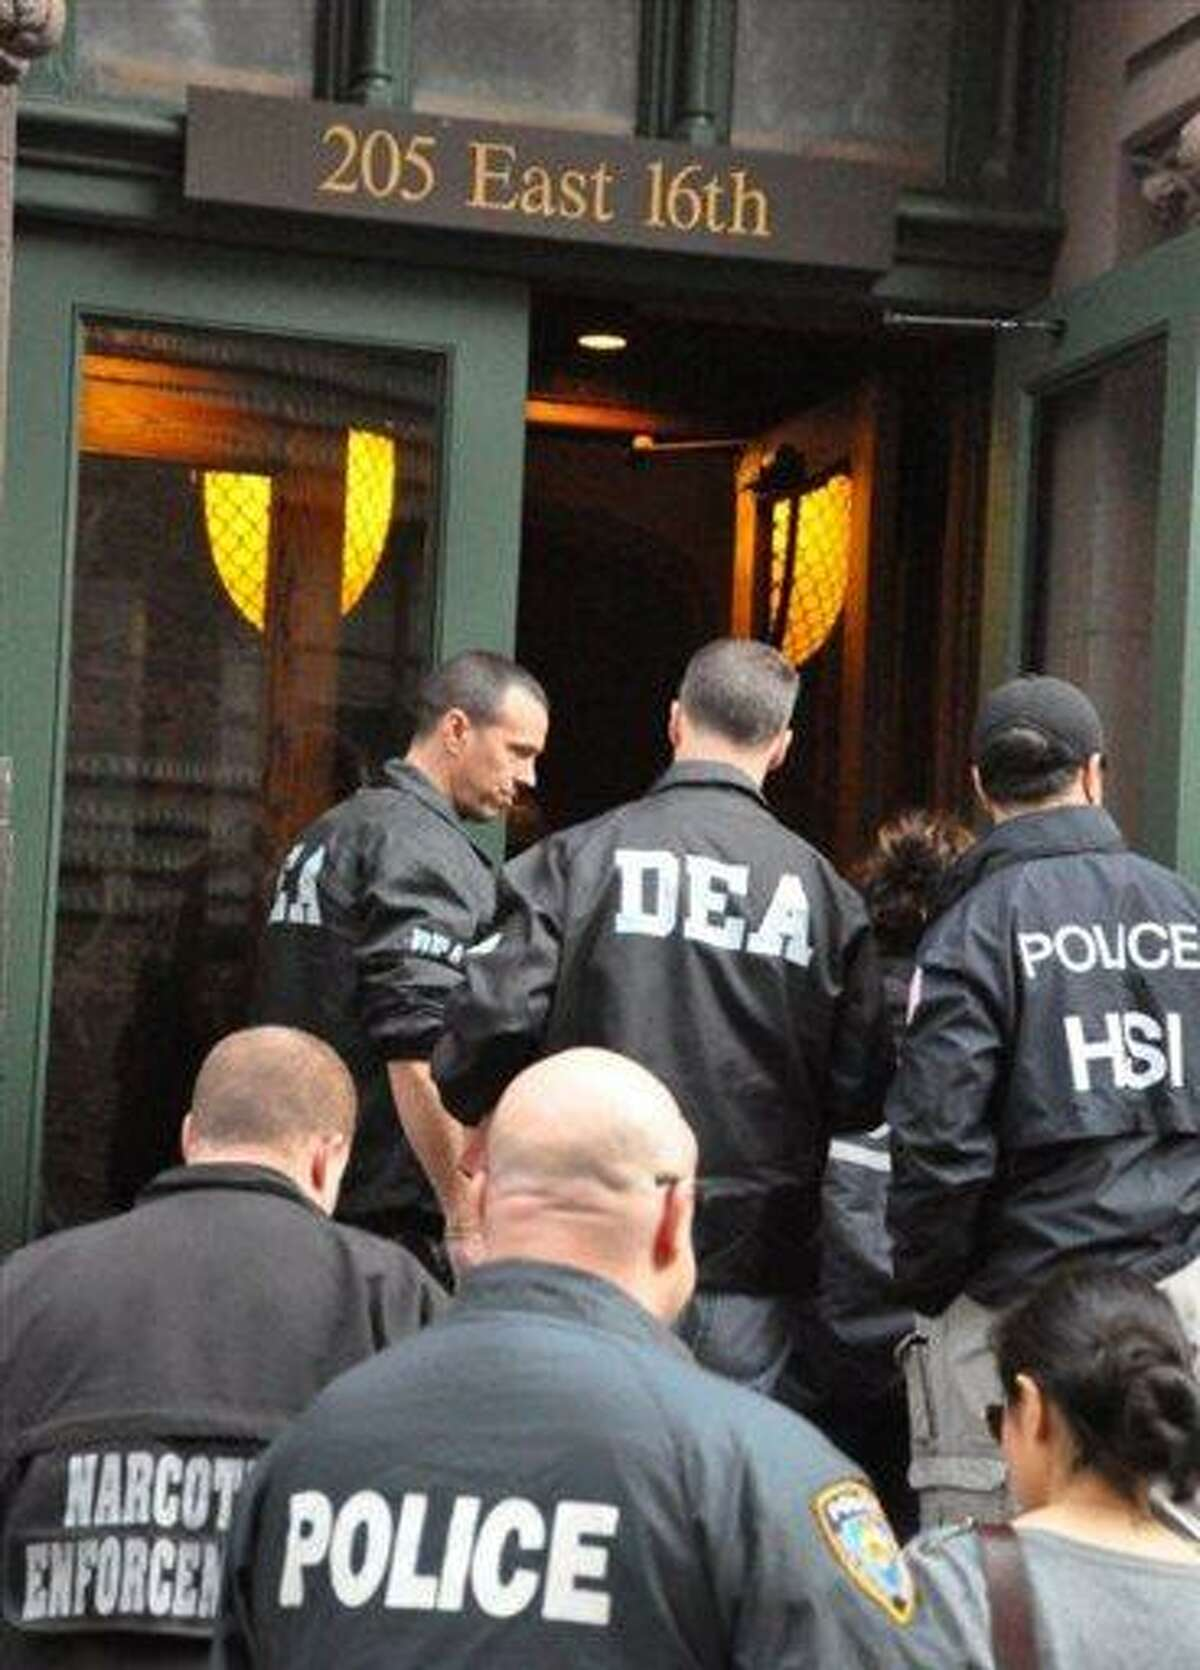 In this March 26, 2013 photo provided by the Office of the Special Narcotics Prosecutor for the City of New York, officers from the New York City Police Department and the U.S. Drug Enforcement Administration raid the New York City office of Dr. Hector Castro. Authorities say that Castro led a narcotics smuggling ring that trafficked at least $10 million worth of drugs across several states. (AP Photo/Office of the Special Narcotics Prosecutor for the City of New York)